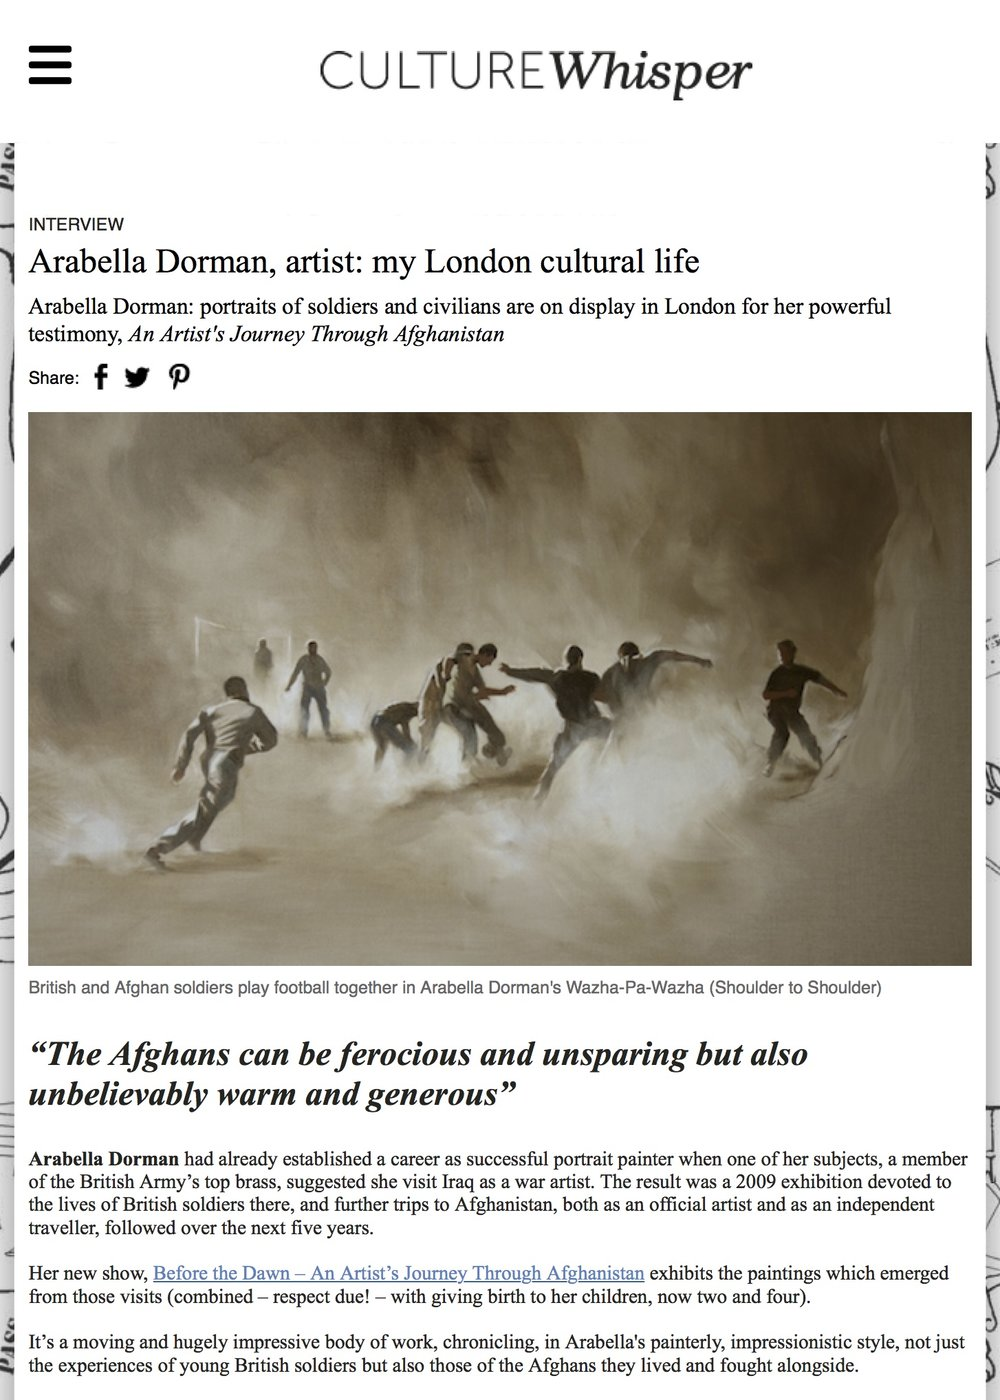 Arabella Dorman, artist: my London cultural life | Culture Whisper.jpg